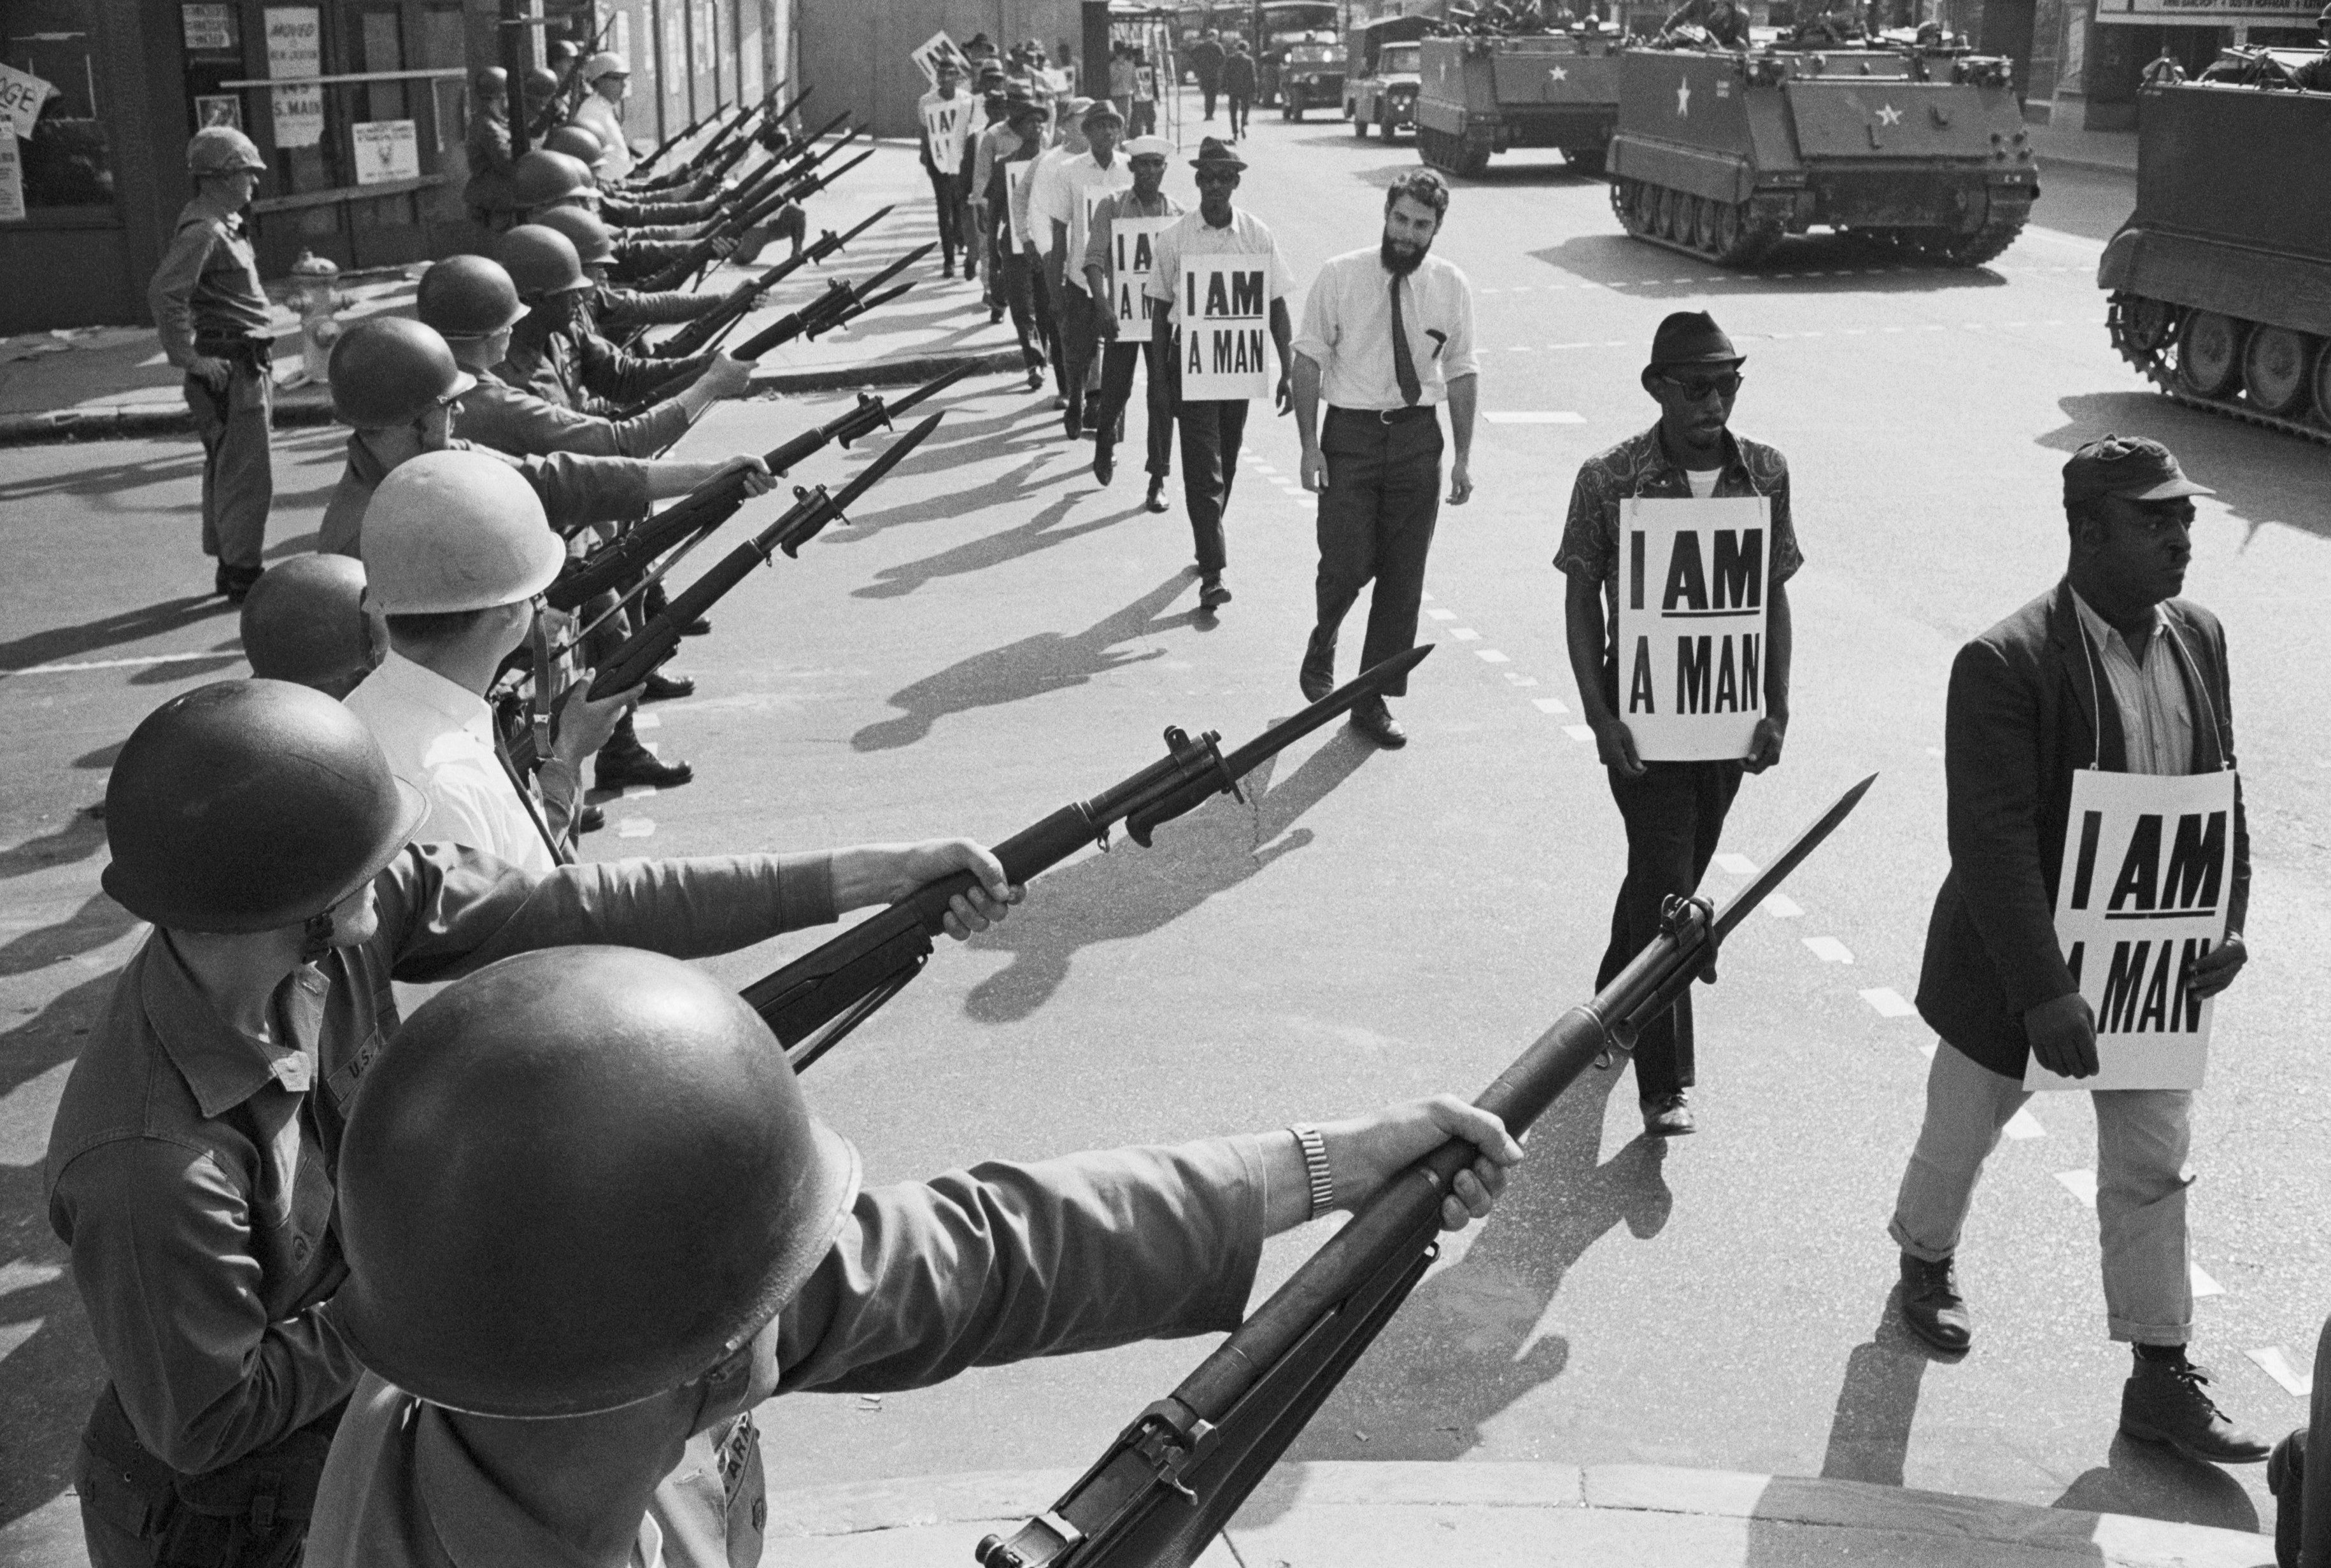 U.S. National Guard troops block off Beale Street as Civil Rights marchers wearing placards reading, 'I AM A MAN' pass by on March 29, 1968. It was the third consecutive march held by the group in as many days. Rev. Martin Luther King, Jr., who had left town after the first march, would soon return and be assassinated.